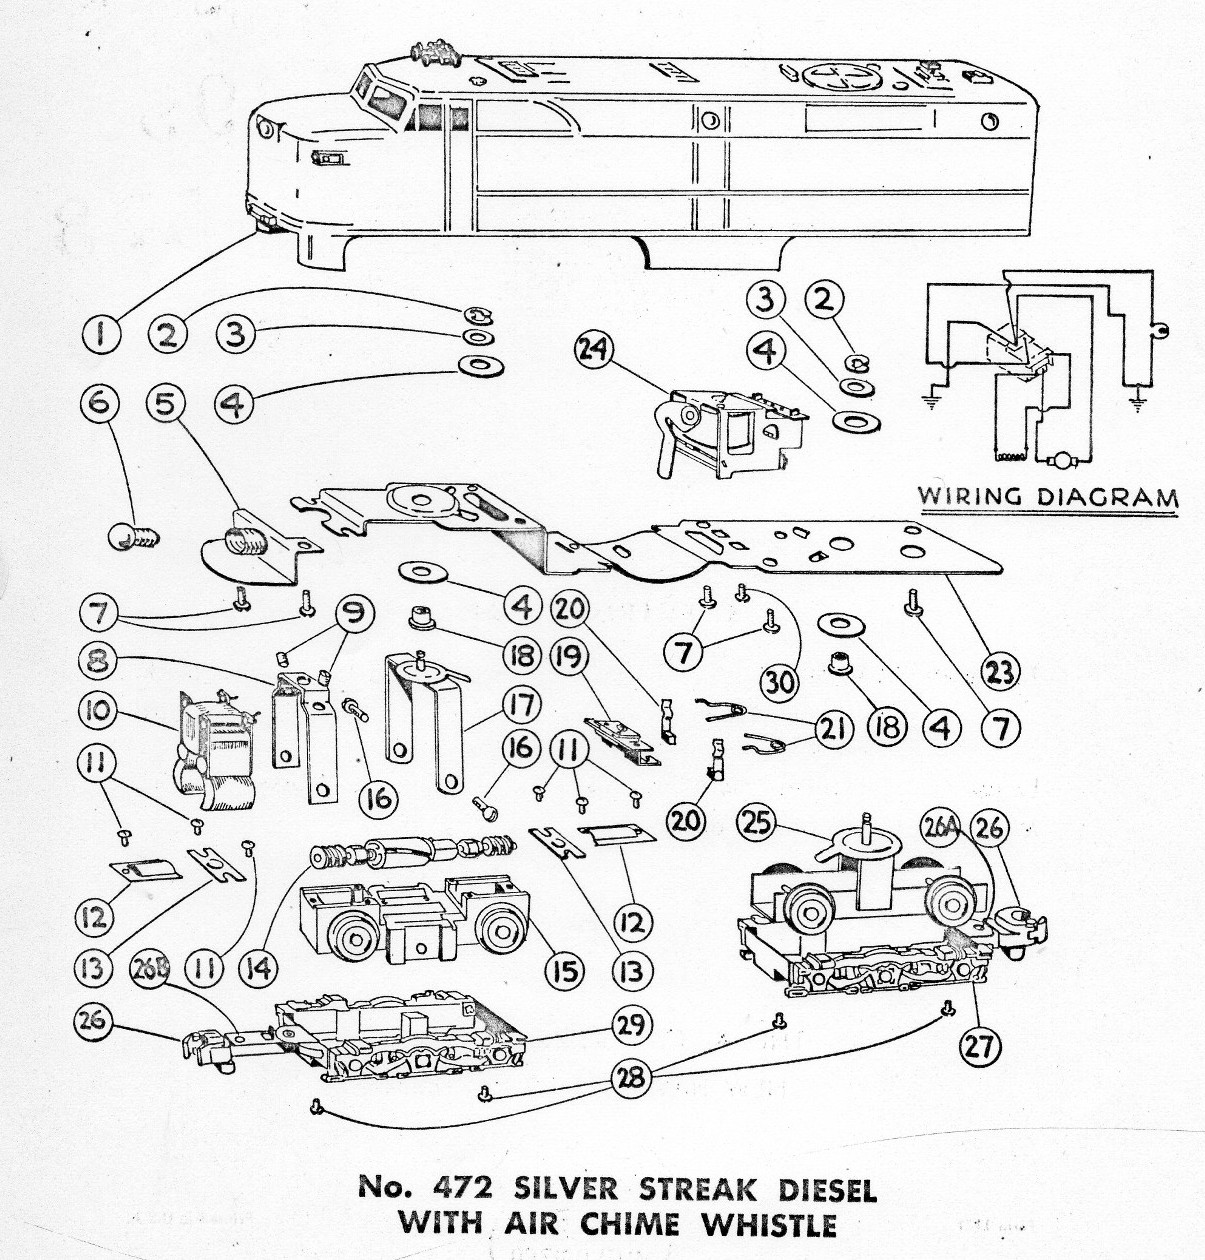 american flyer train parts diagram  american  free engine